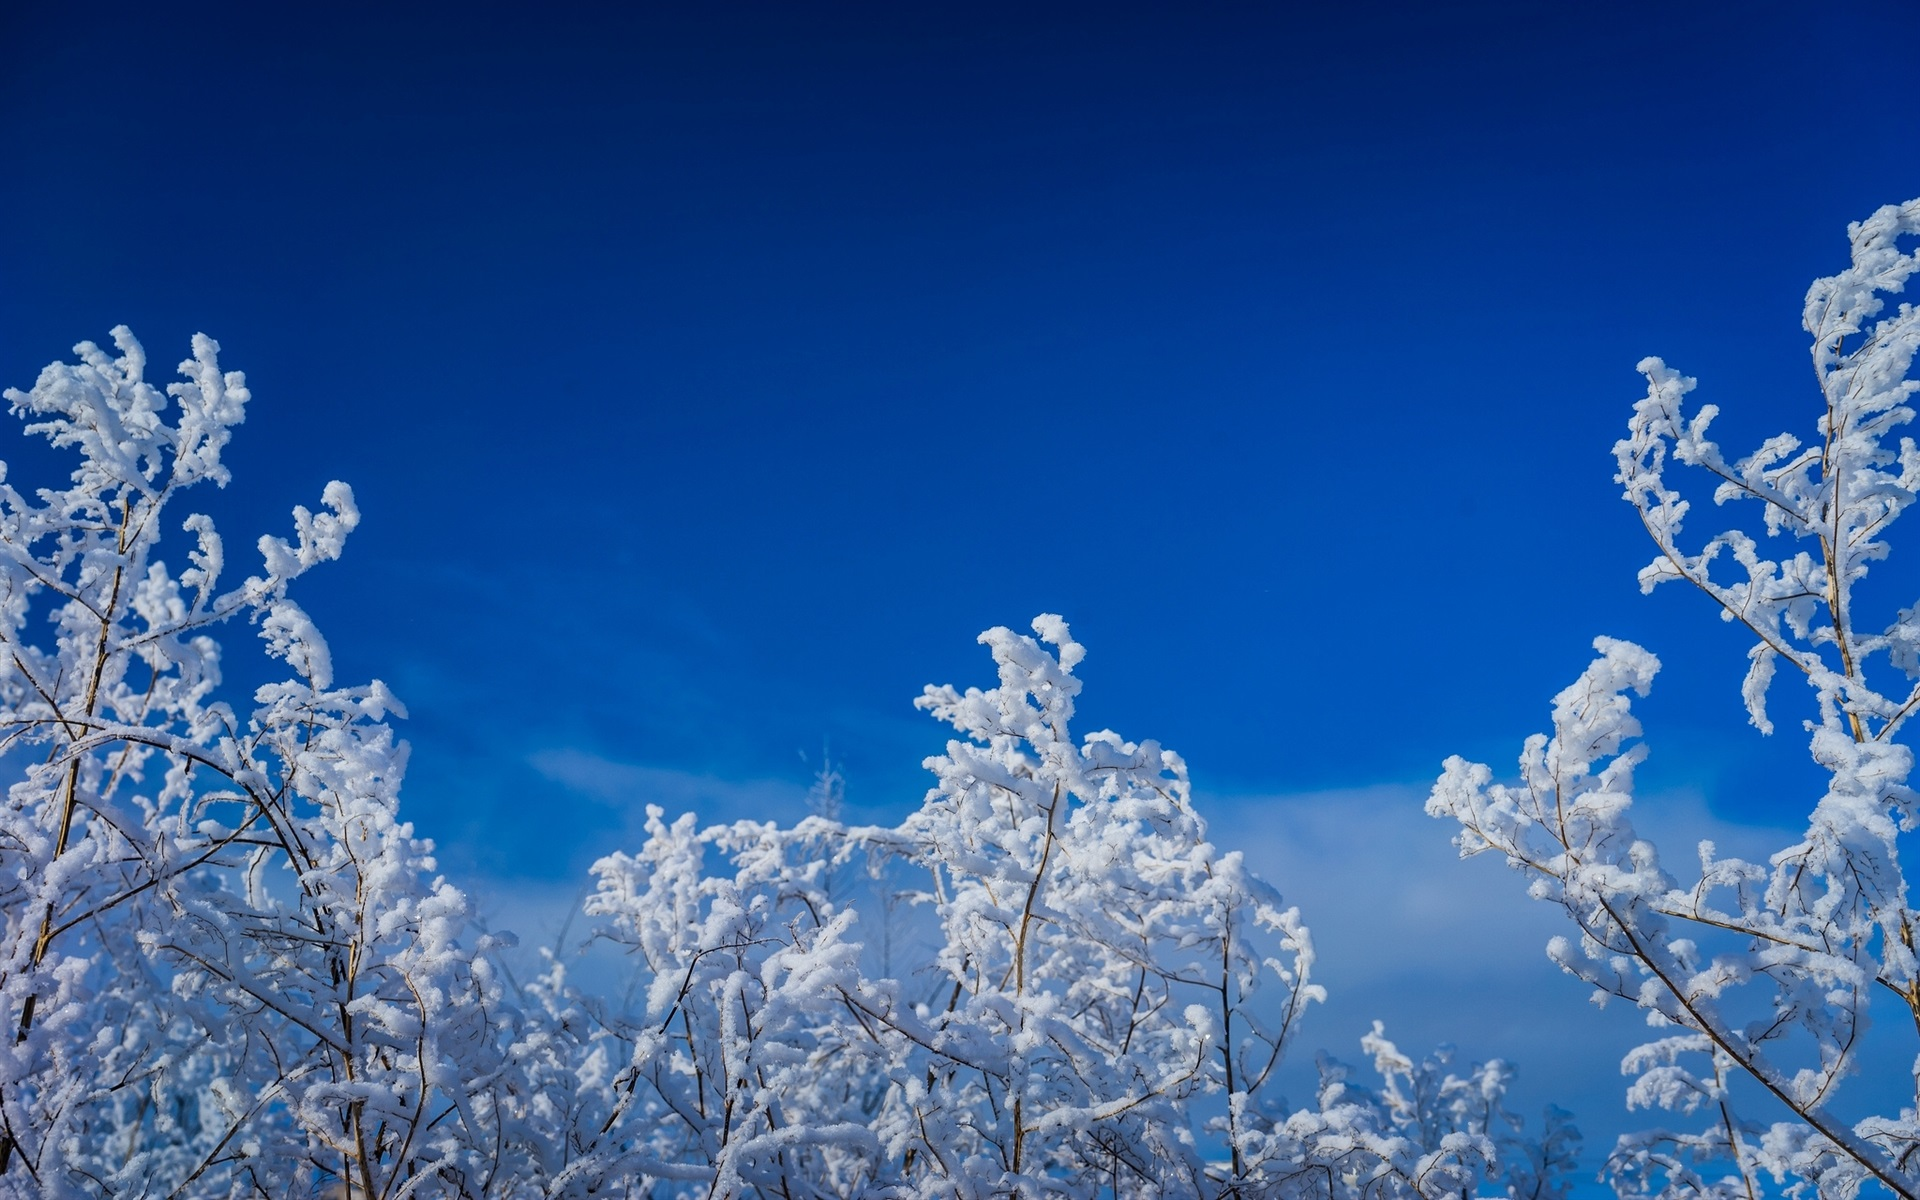 Twigs-tree-snow-blue-sky-winter_1920x1200.jpg